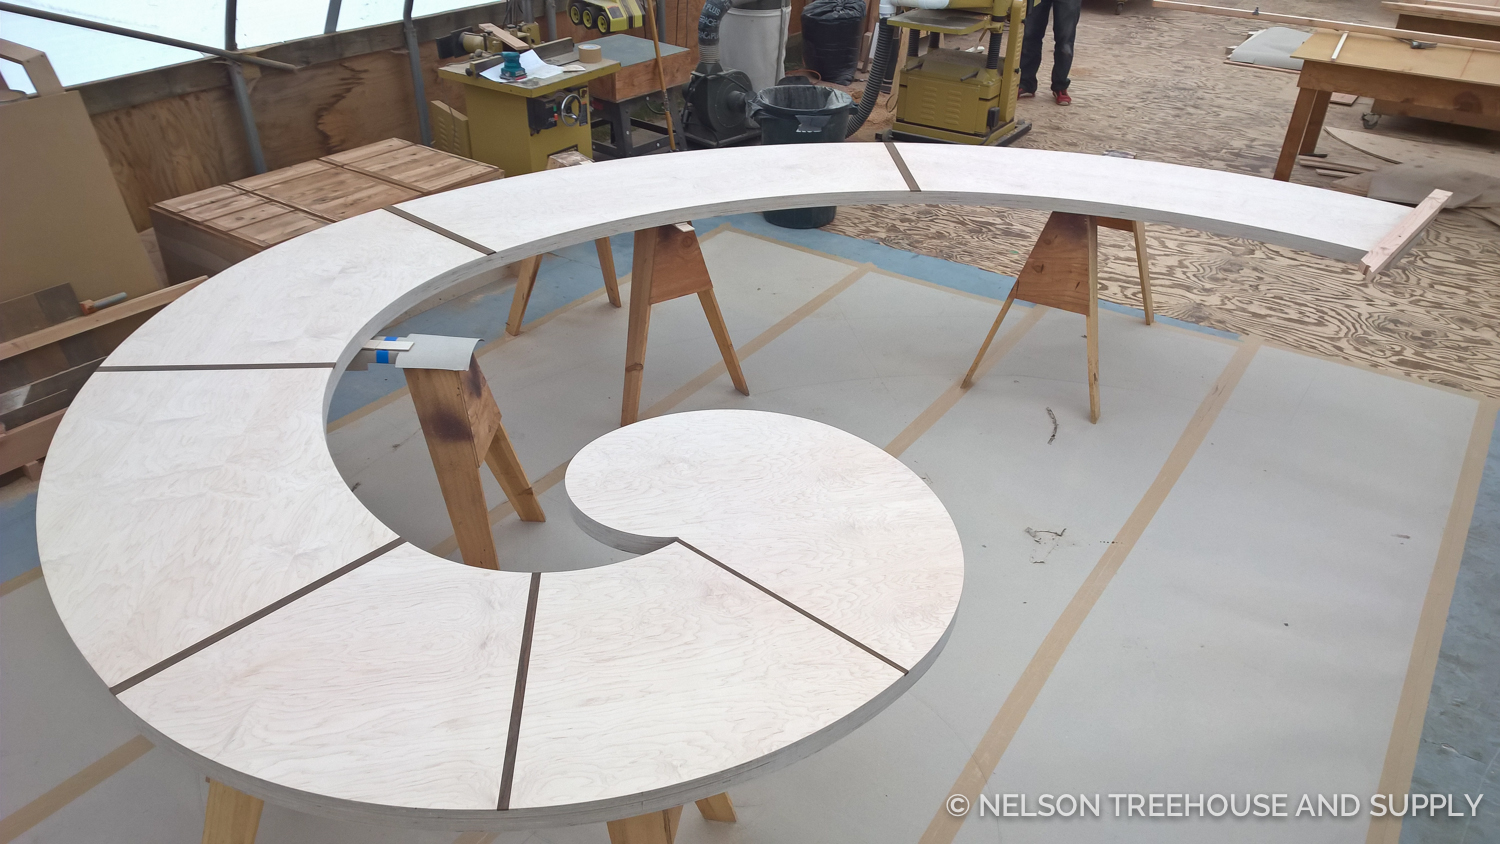 Dylan worked on this built-in, curved bench for the  owl's Nest library treehouse . The design for this bench is based on the fibonacci spiral - you can find out  how to build it here on our blog.